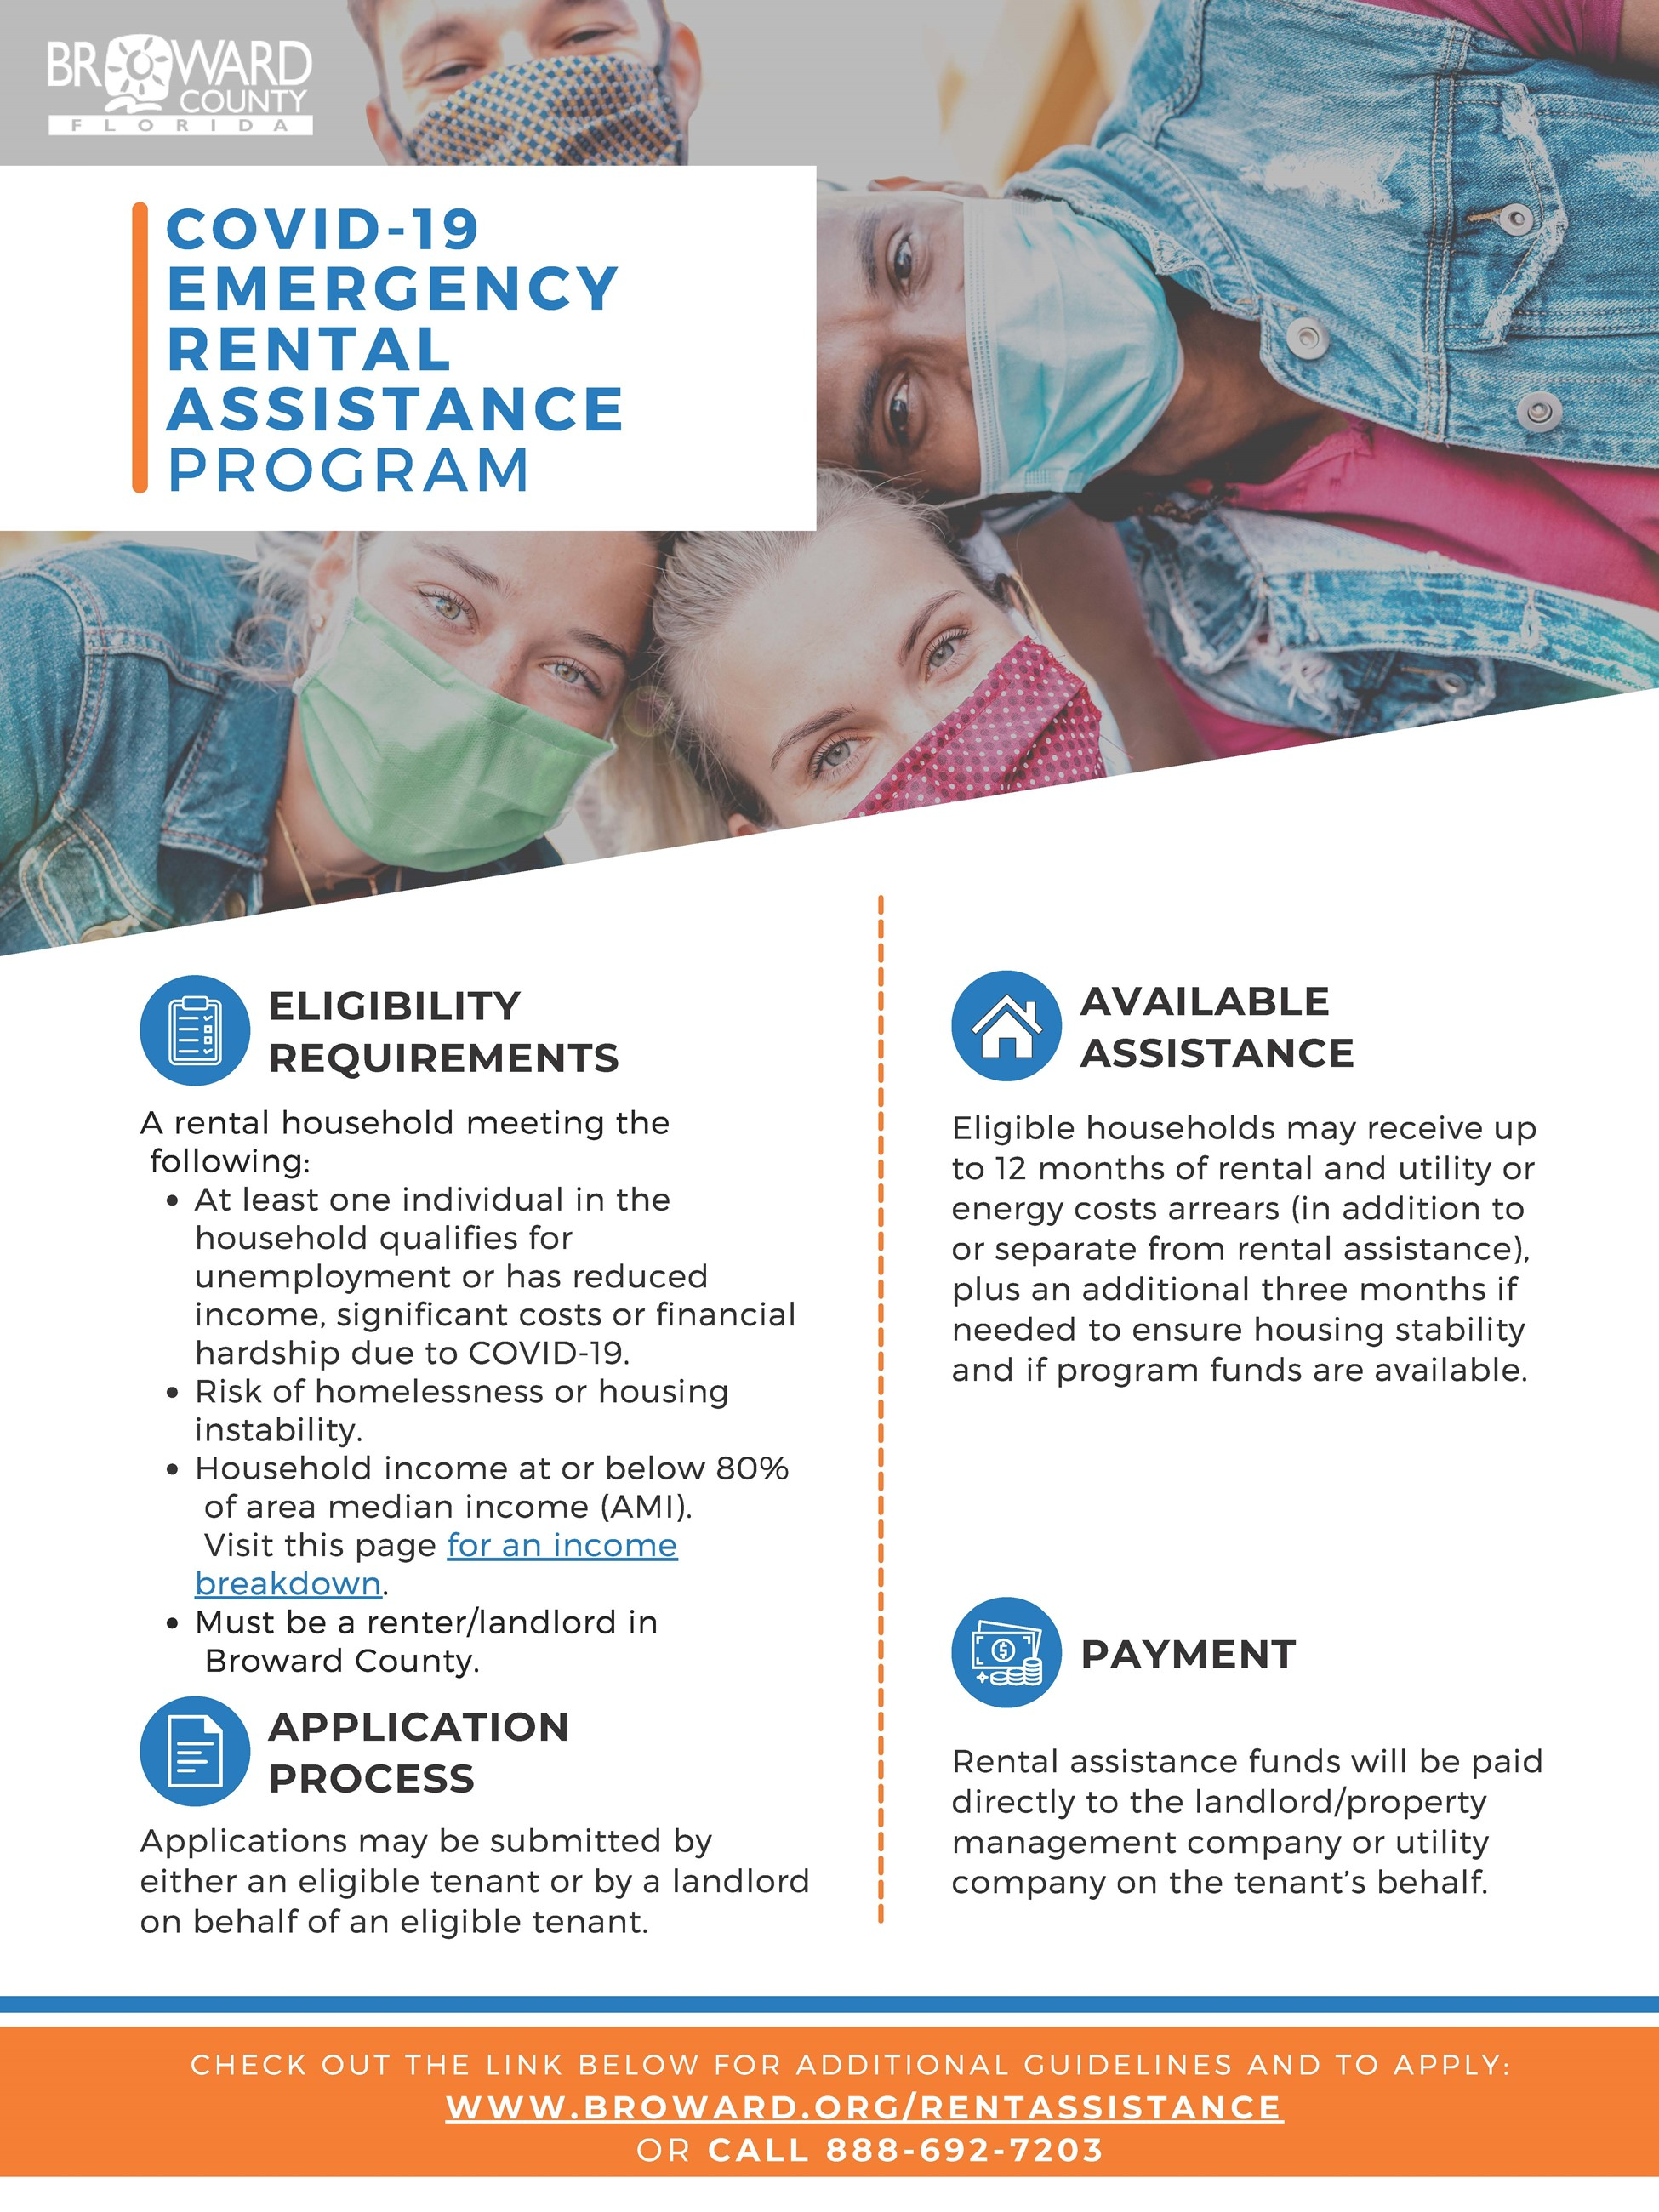 Broward County COVID19 Emergency Rental Assistance Flyer - coming soon